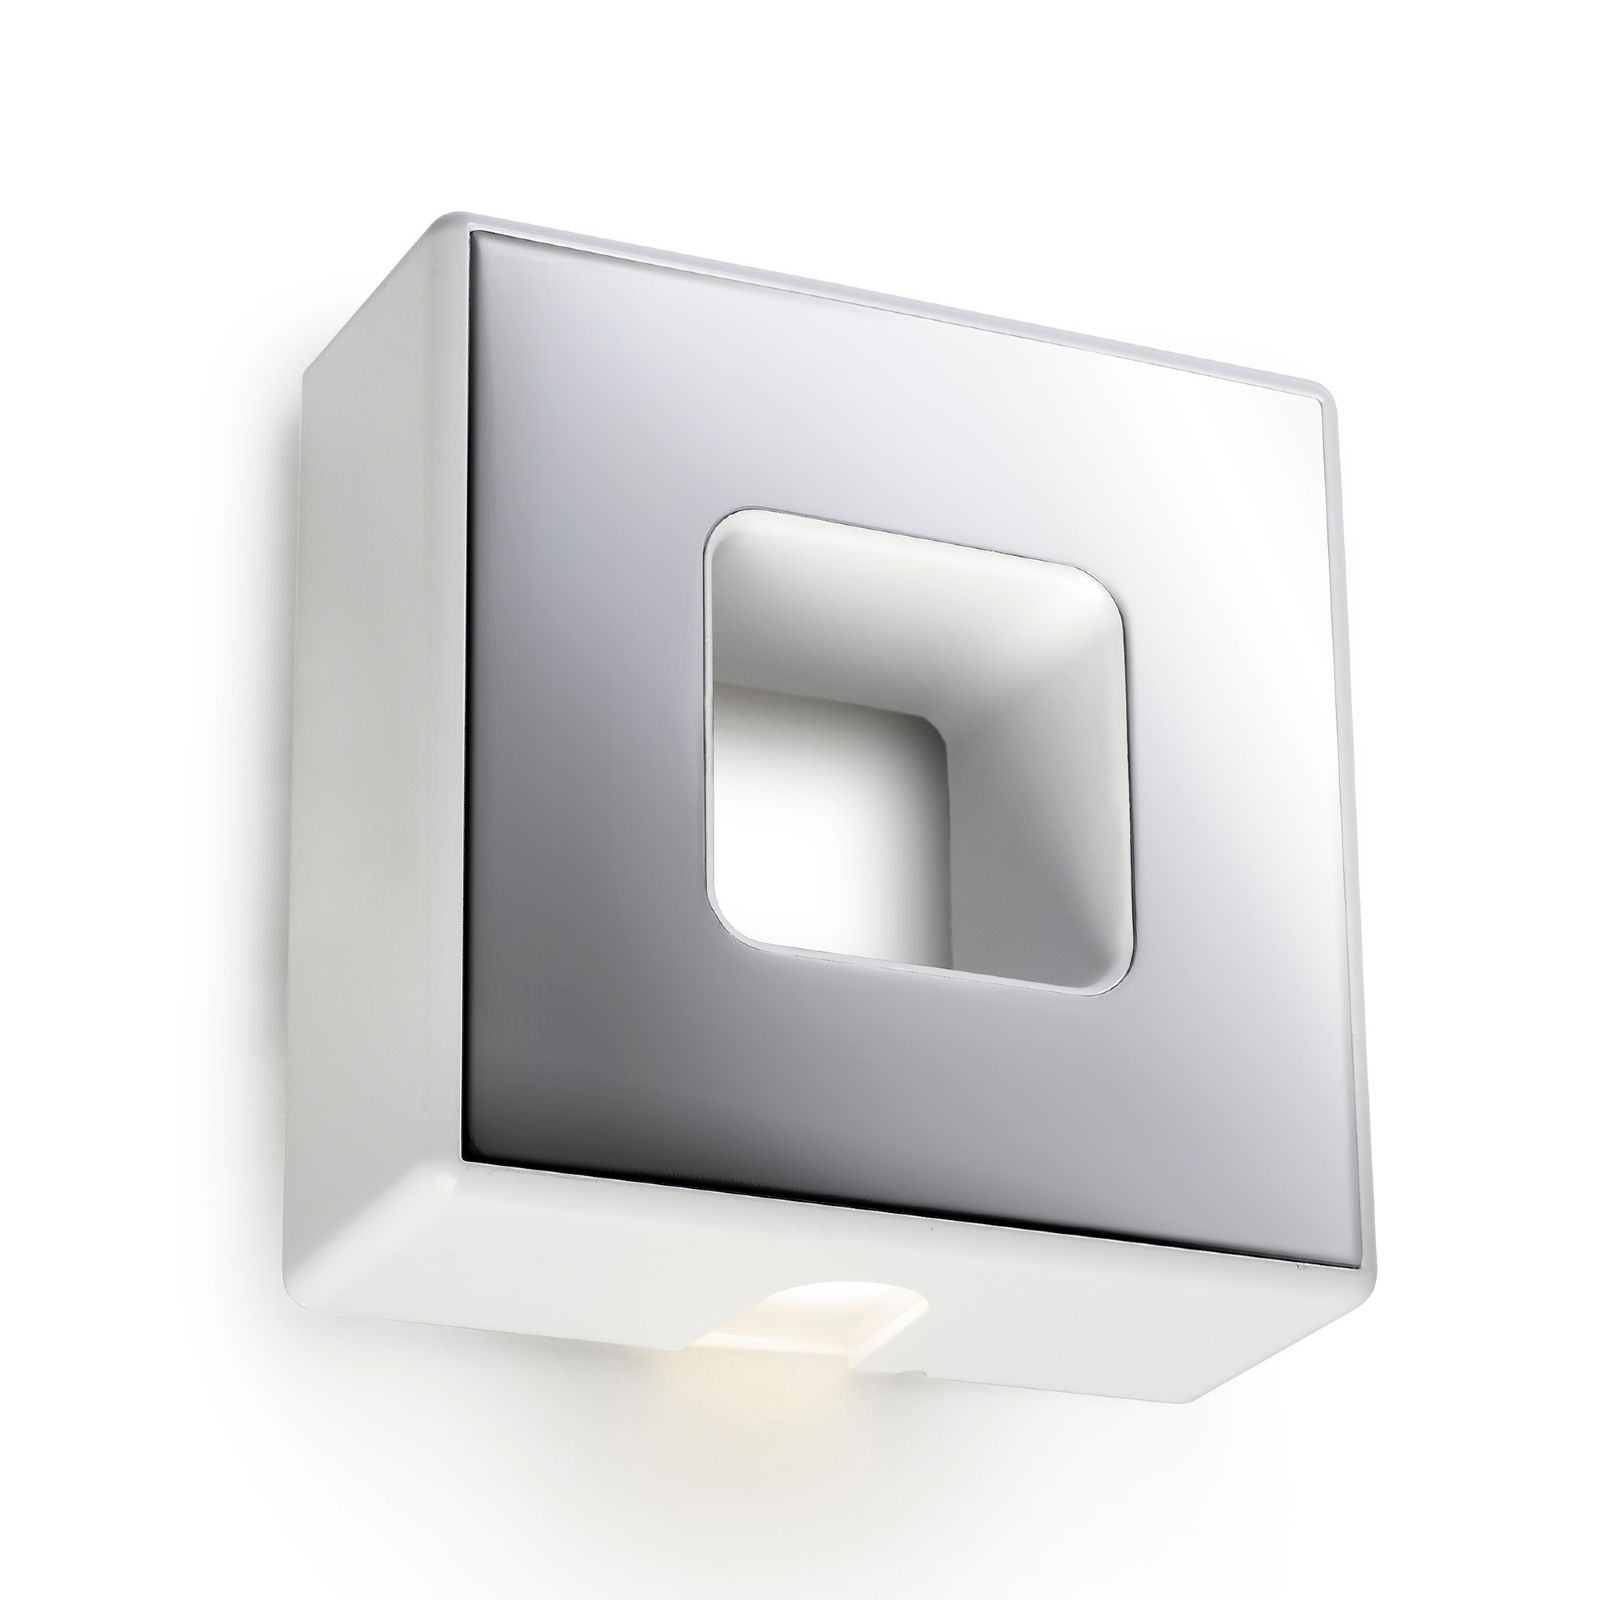 All Square Wall Lights : Square LED Wall Light - Square Aperture